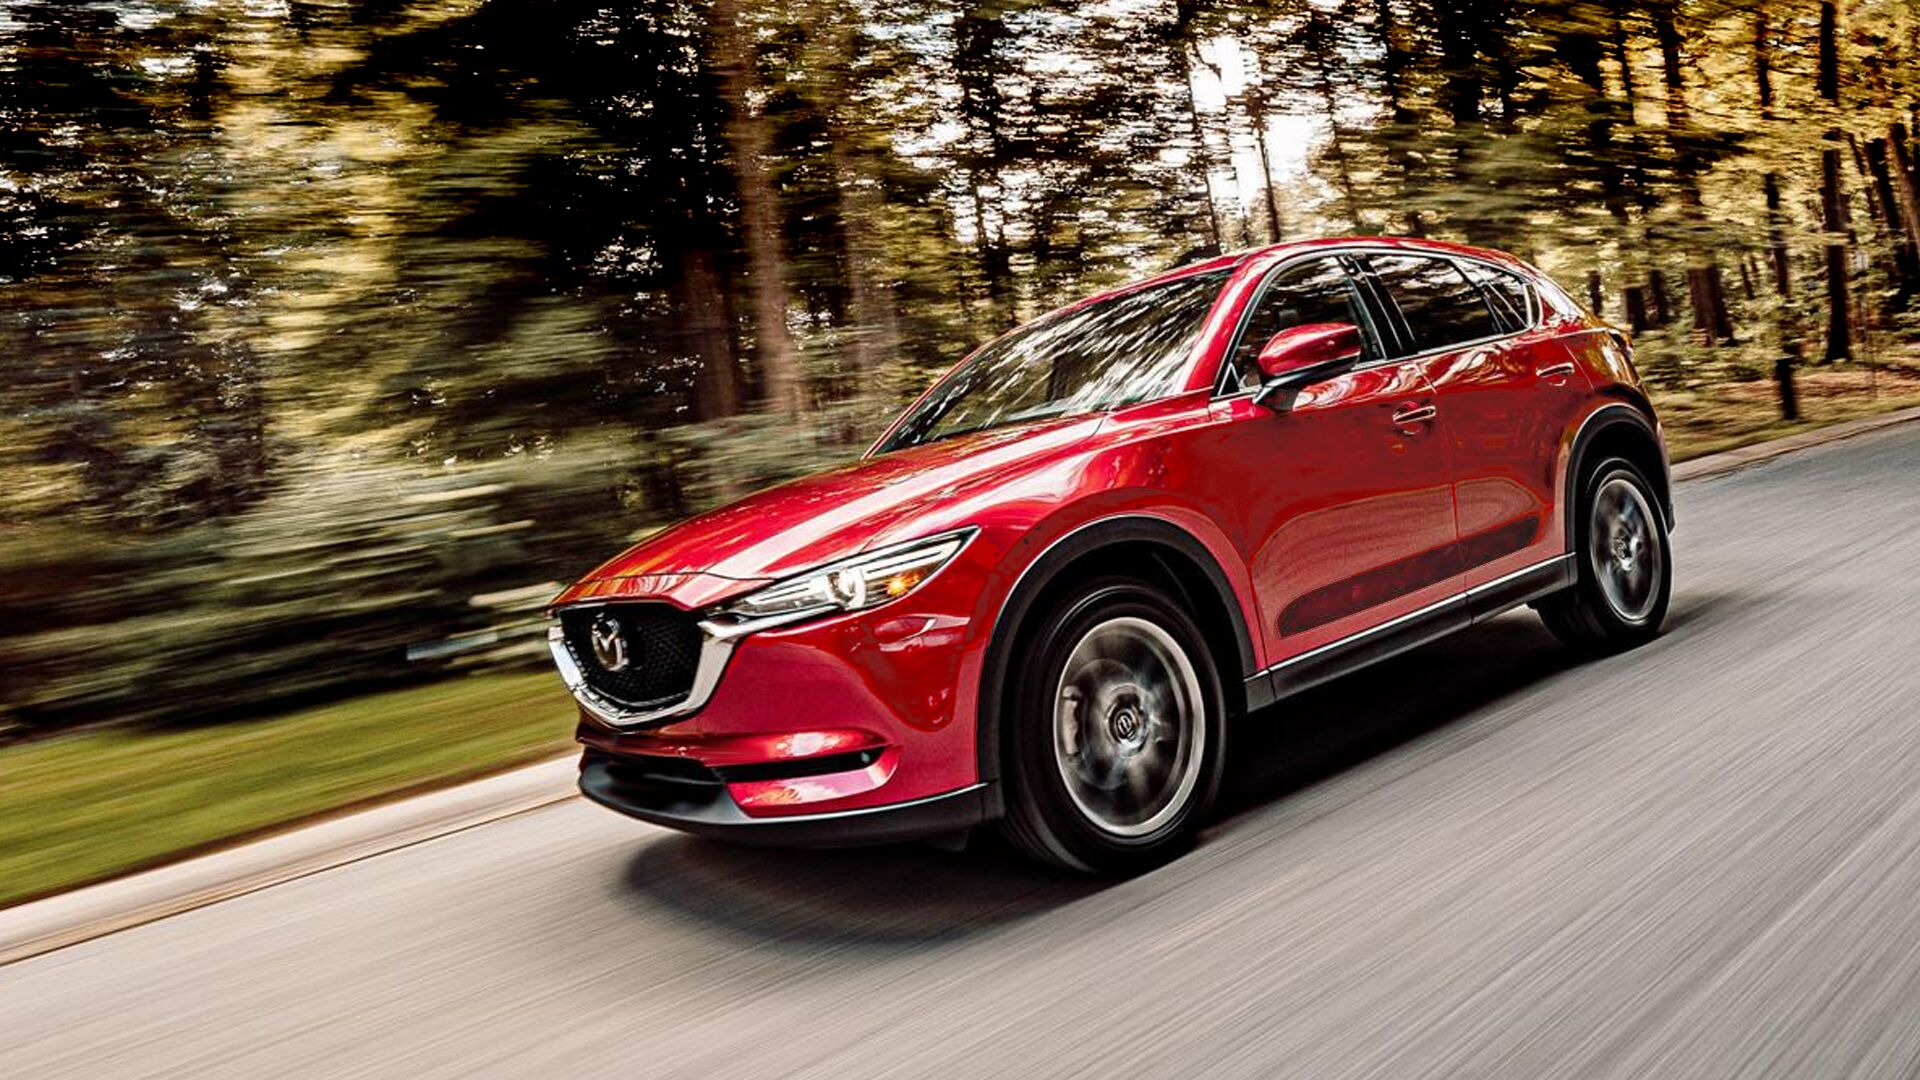 MAZDA CX-5 TURBO Medford NJ